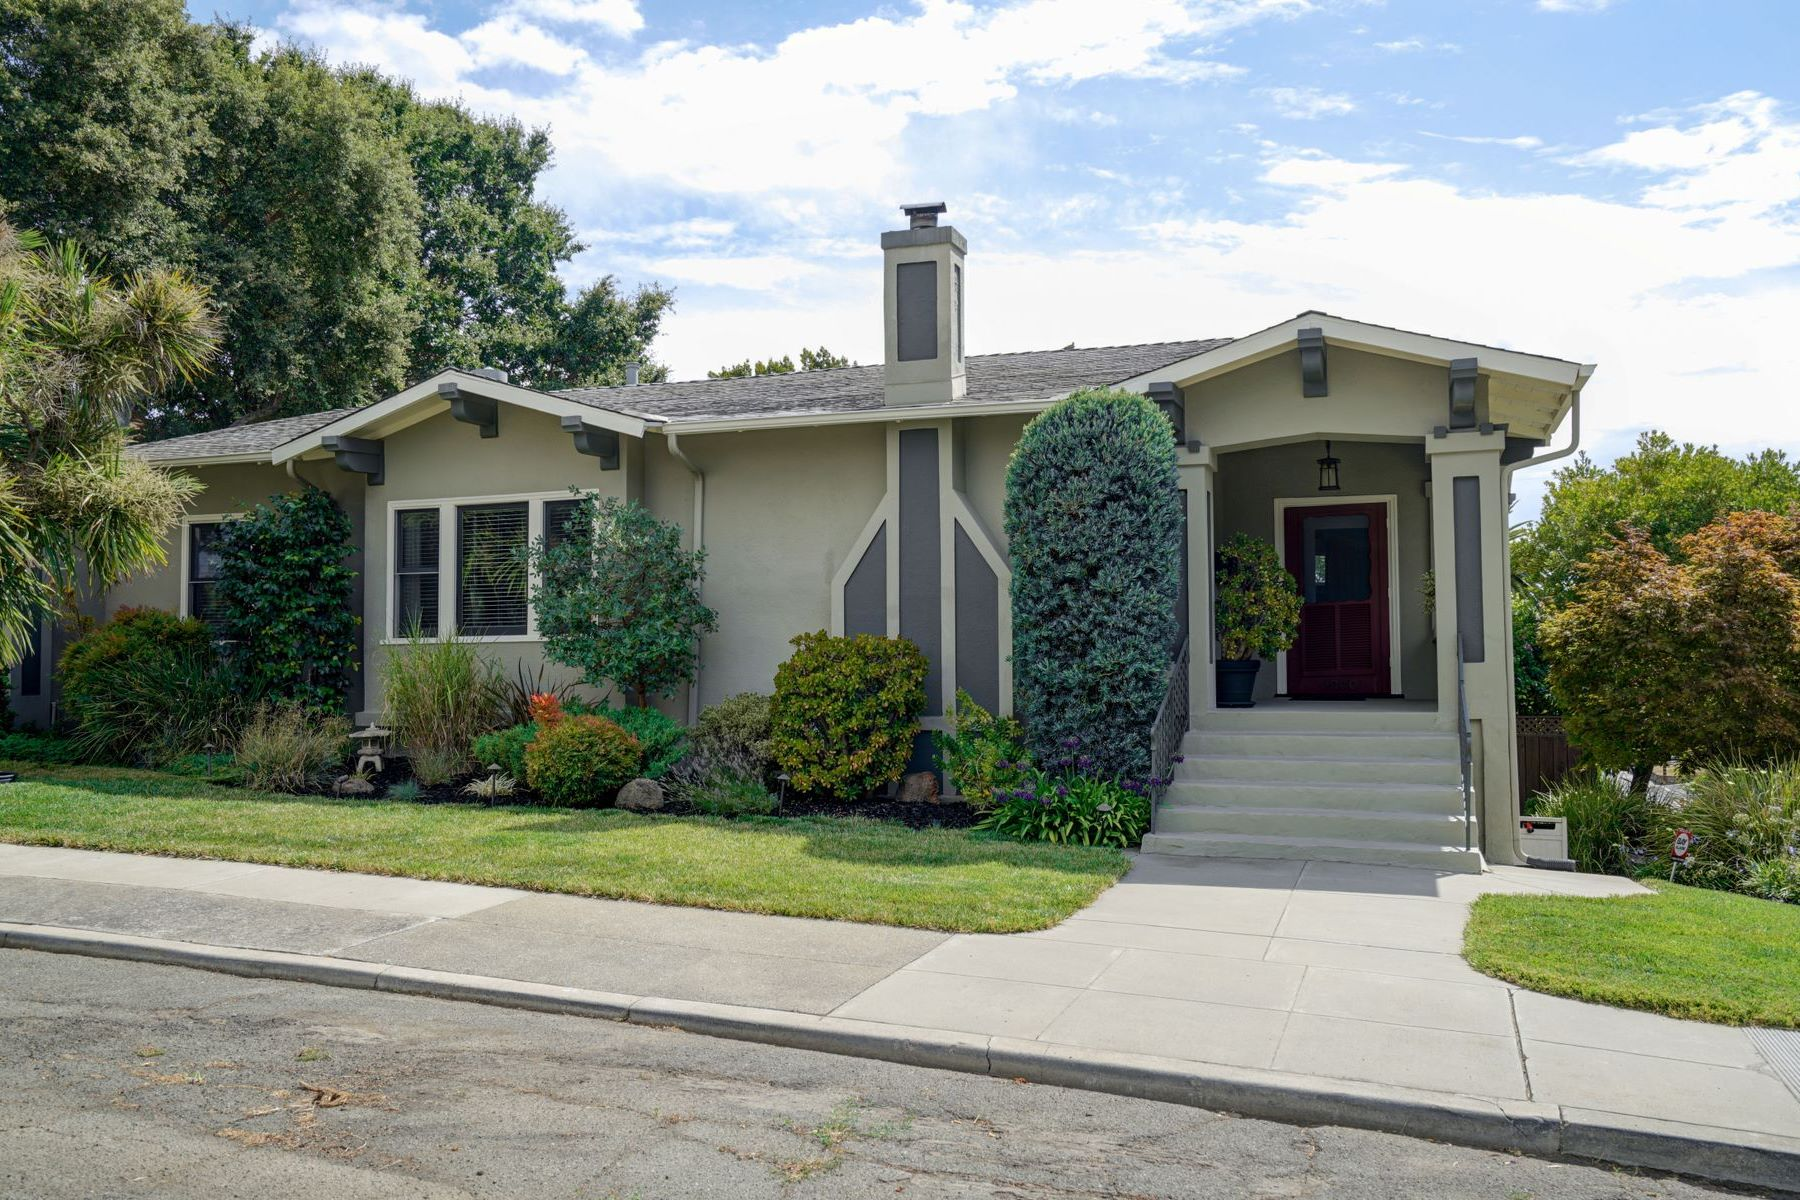 Single Family Homes for Sale at Charming Craftsman Home Circa 1920 1000 Napa St Vallejo, California 94590 United States